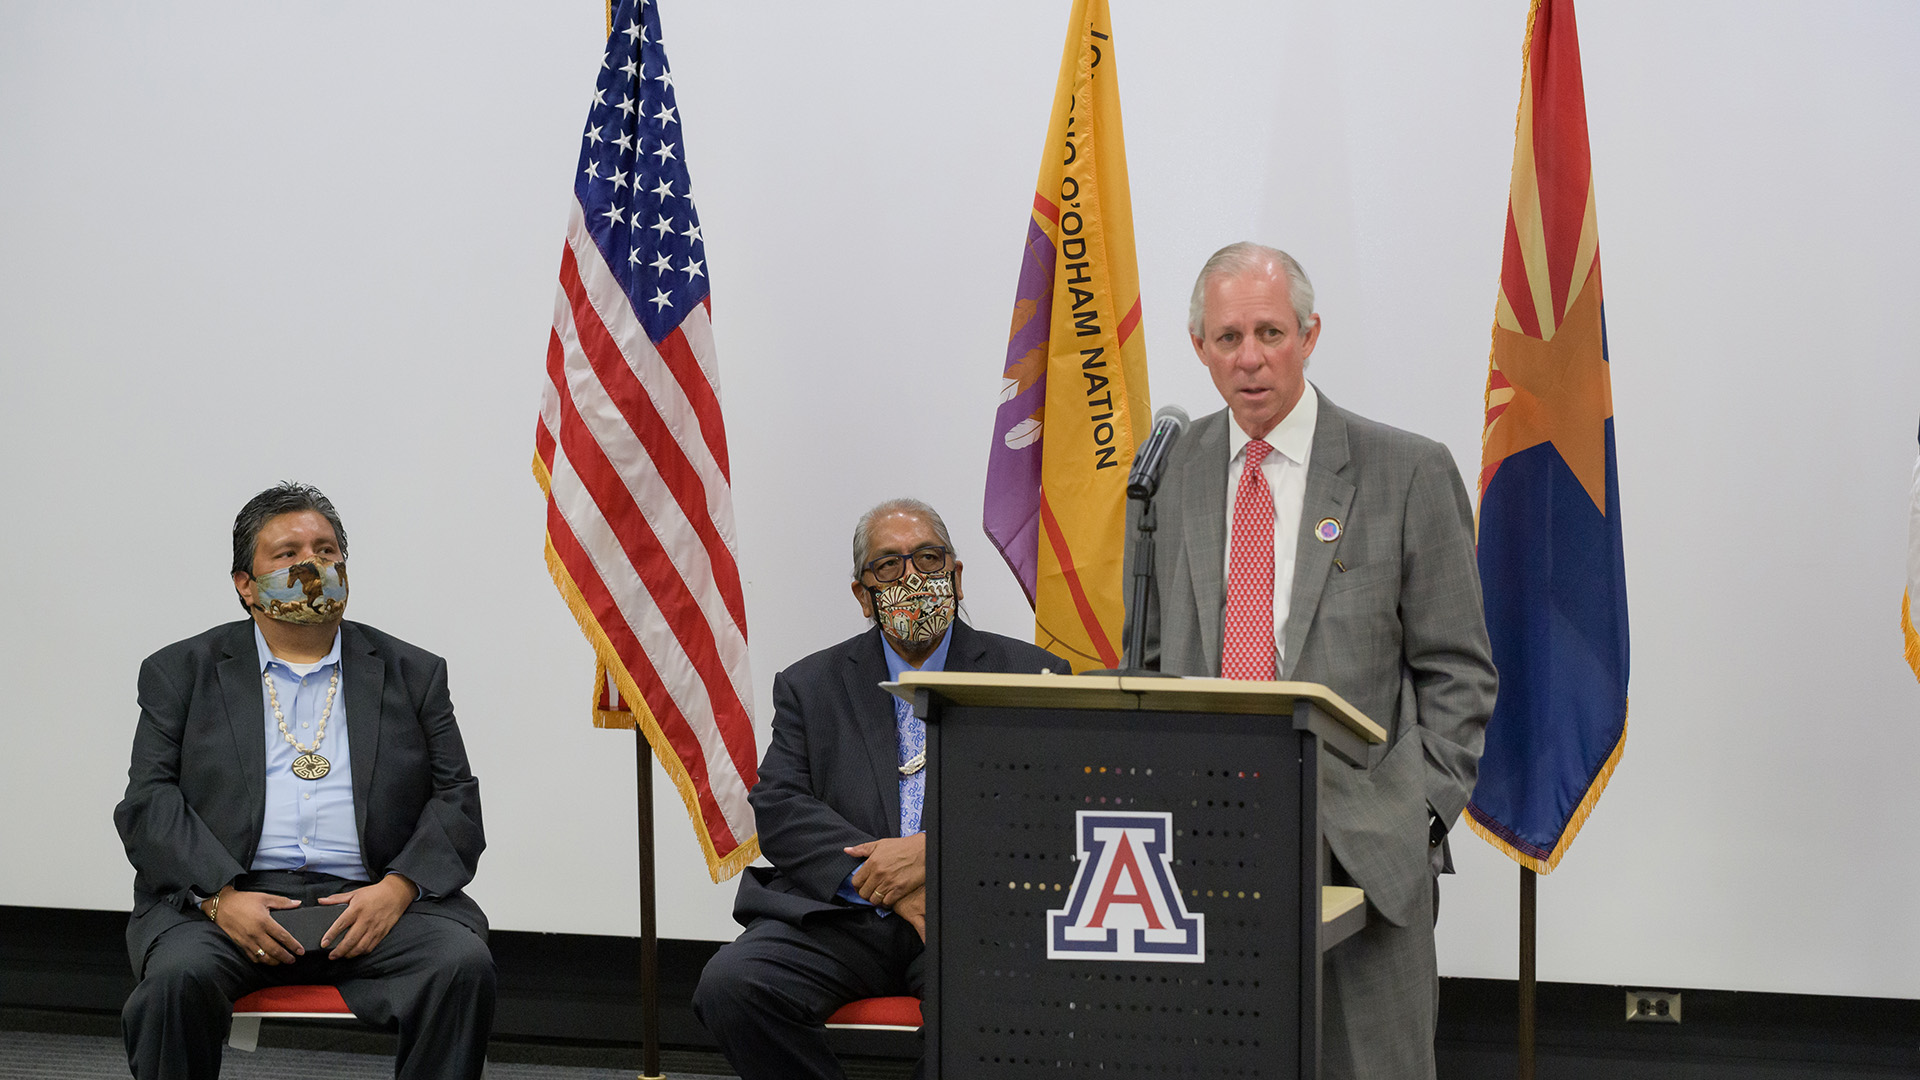 Tohono O'odham Nation Legislative Council Chairman Timothy Joaquin, Tohono O'odham Nation Chairman Ned Norris Jr., and University of Arizona President Robert Robbins at the press conference announcing the nation's donations to the UA and Arizona State University to further COVID-19 research Oct. 19, 2020.